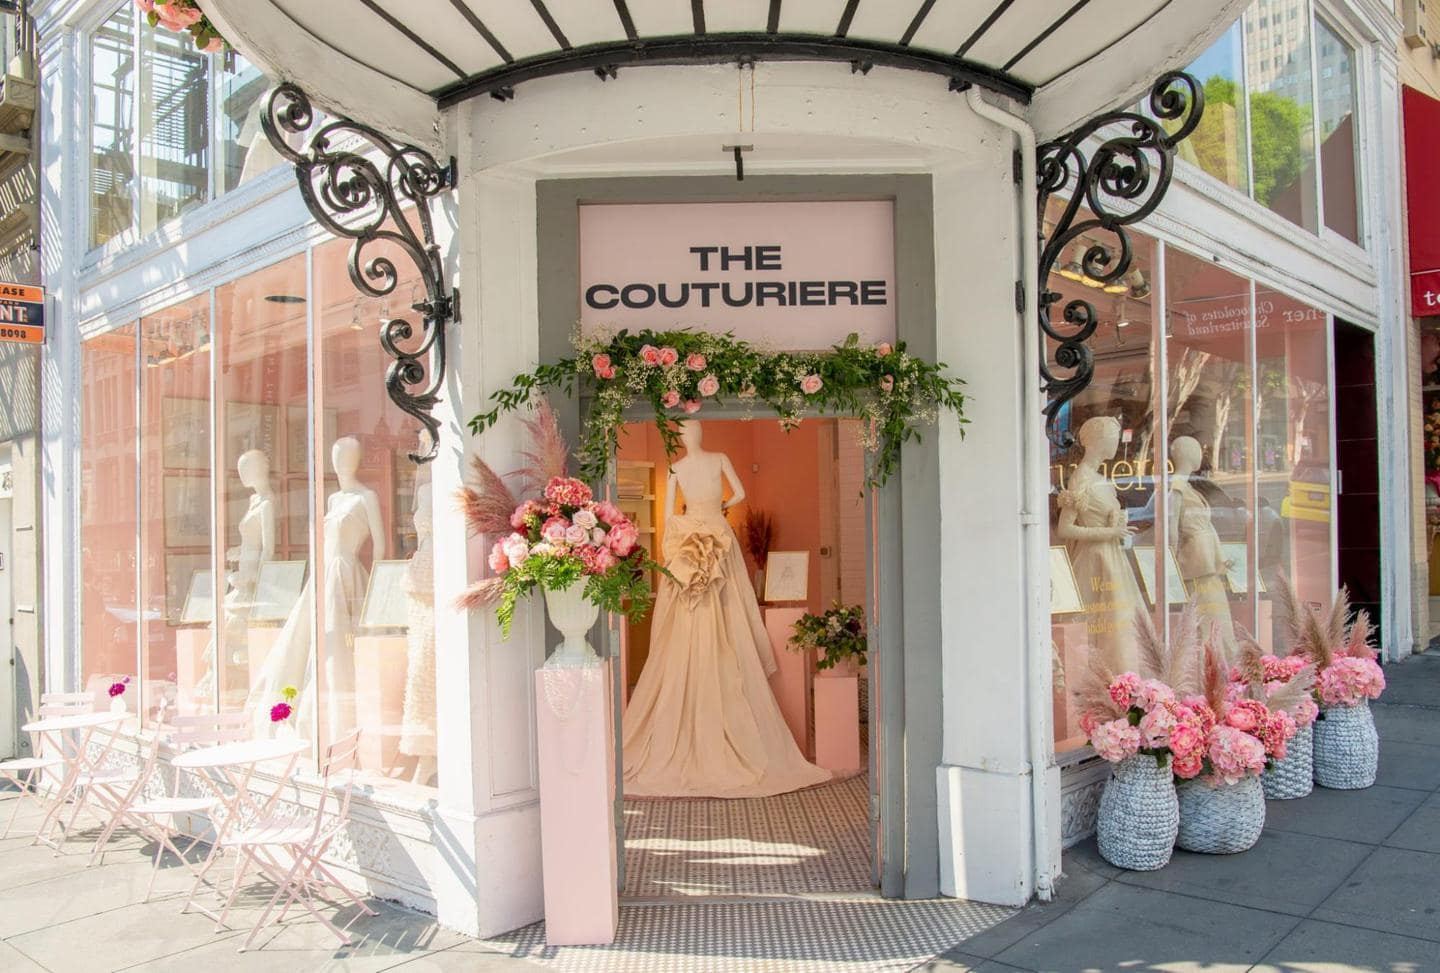 fashion merchandising: Entryway to The Couturiere Showroom